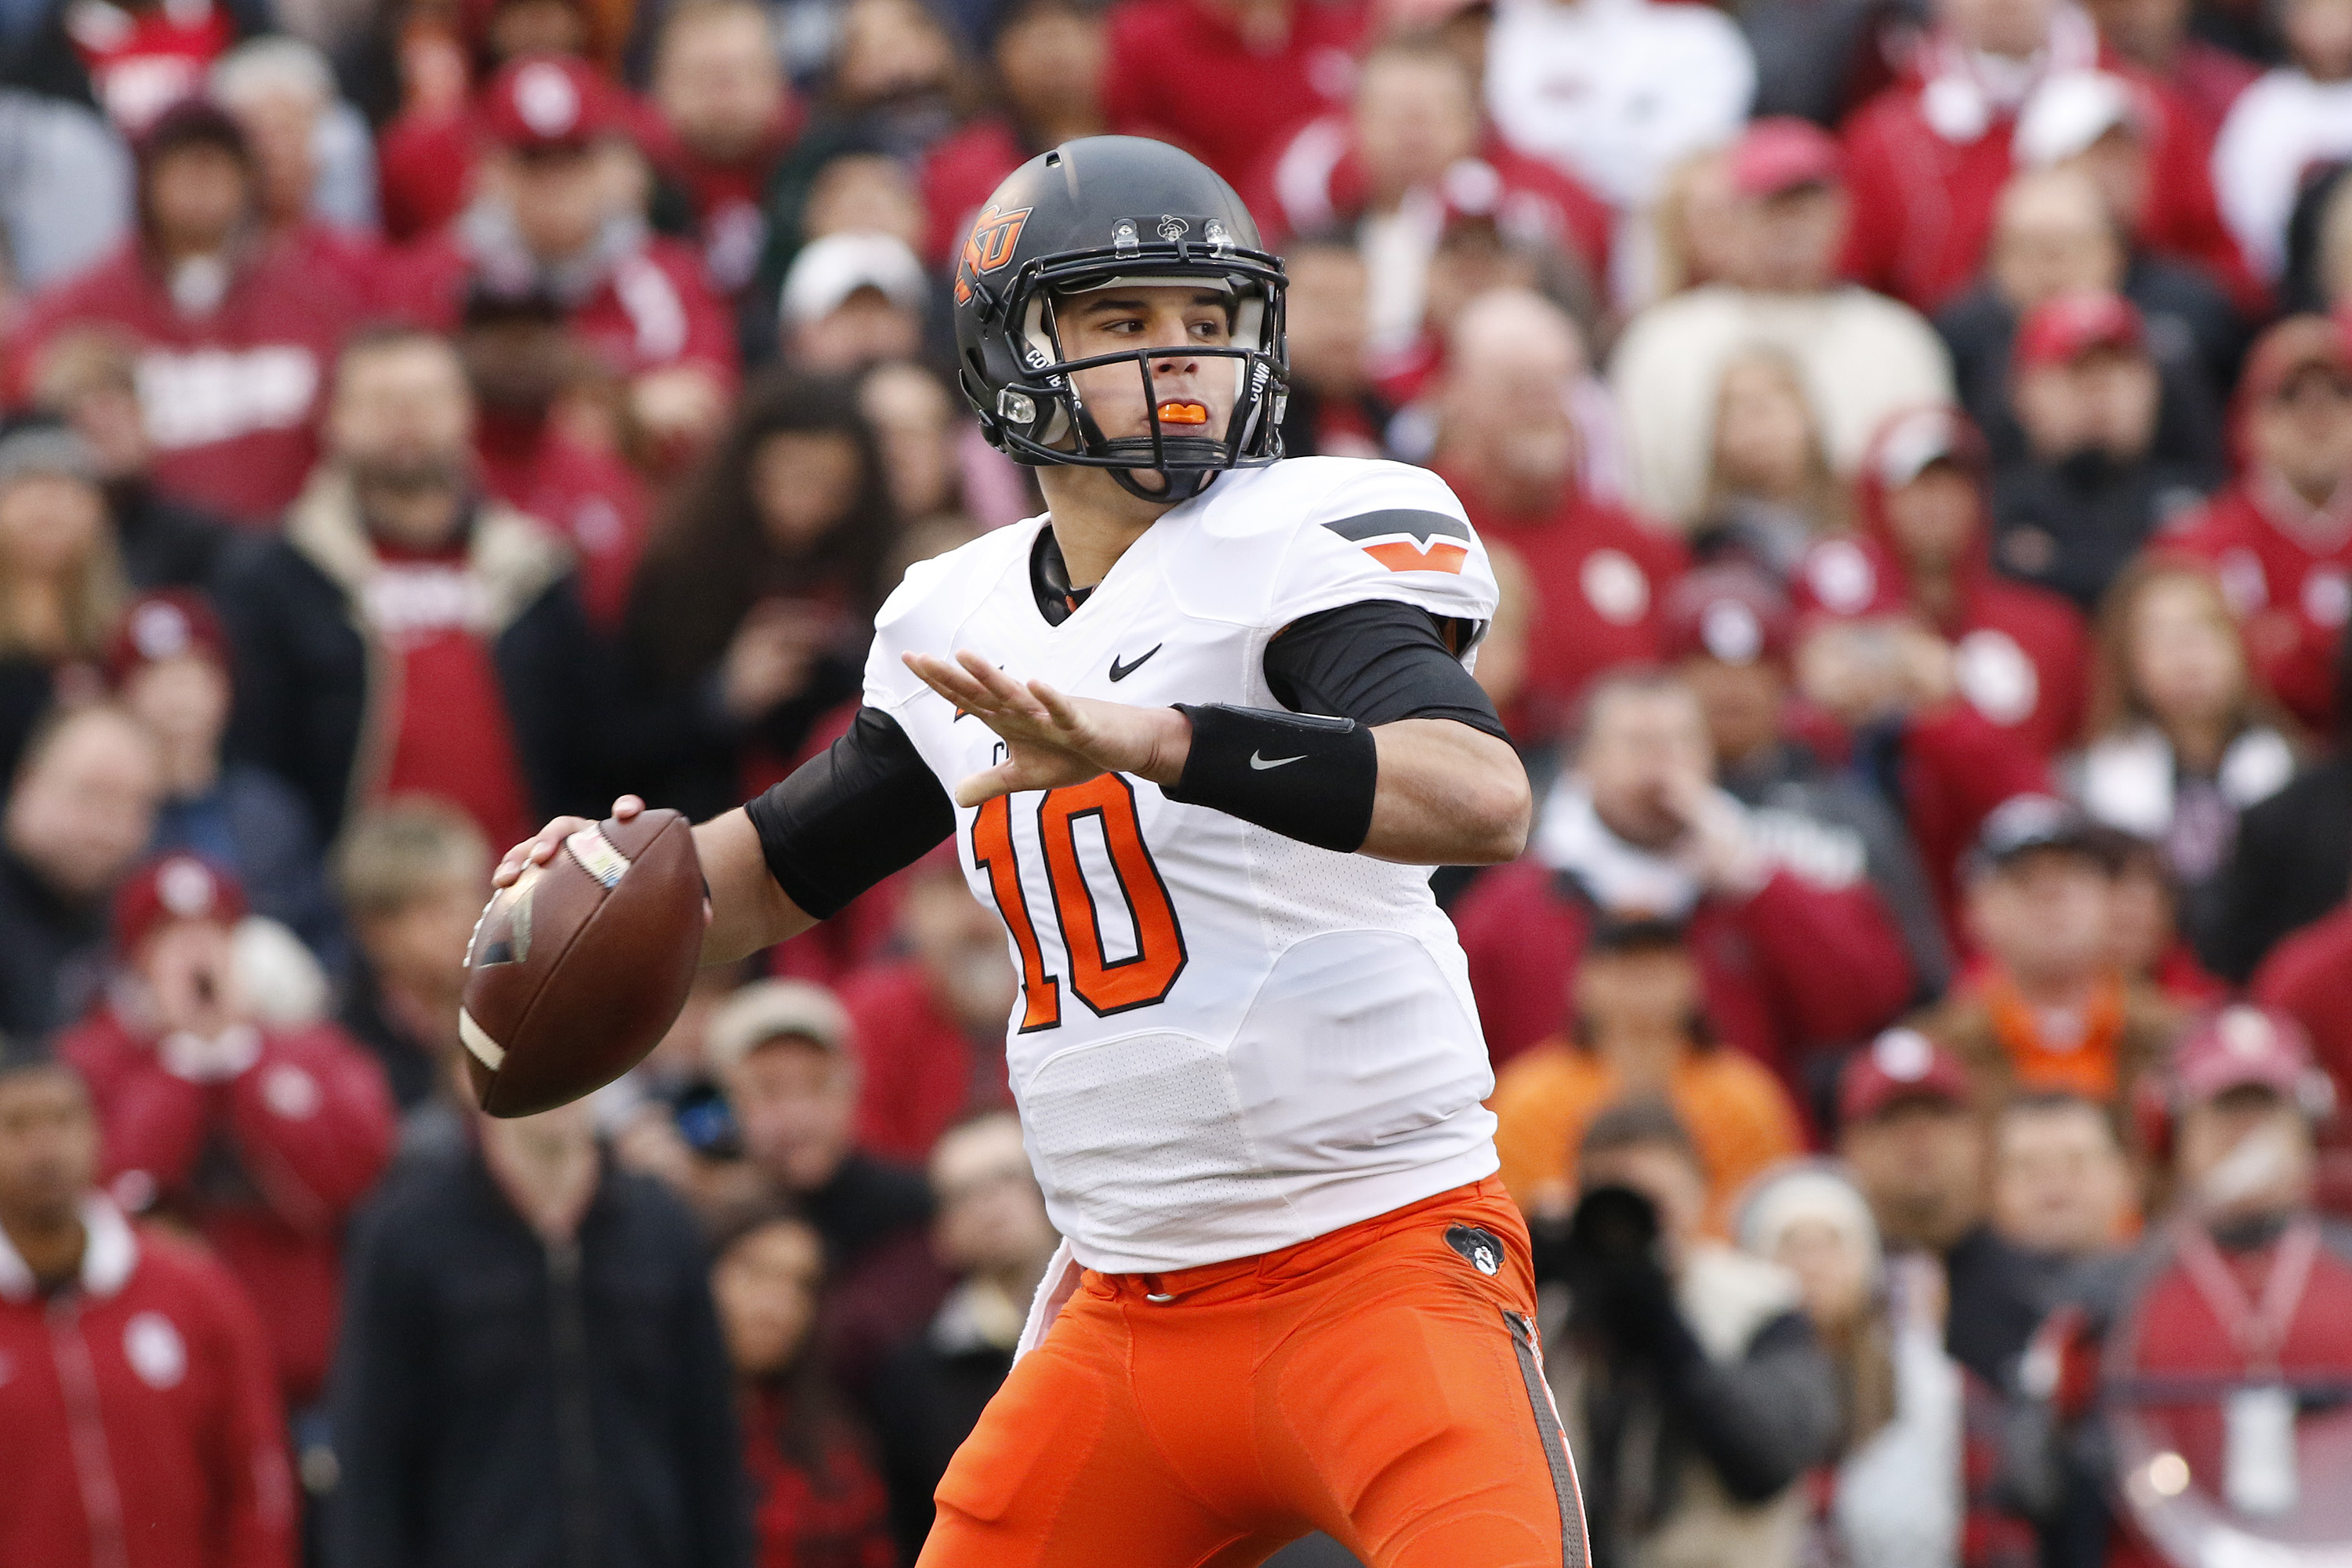 Can this young sophomore QB lead Oklahoma State to the promise land?